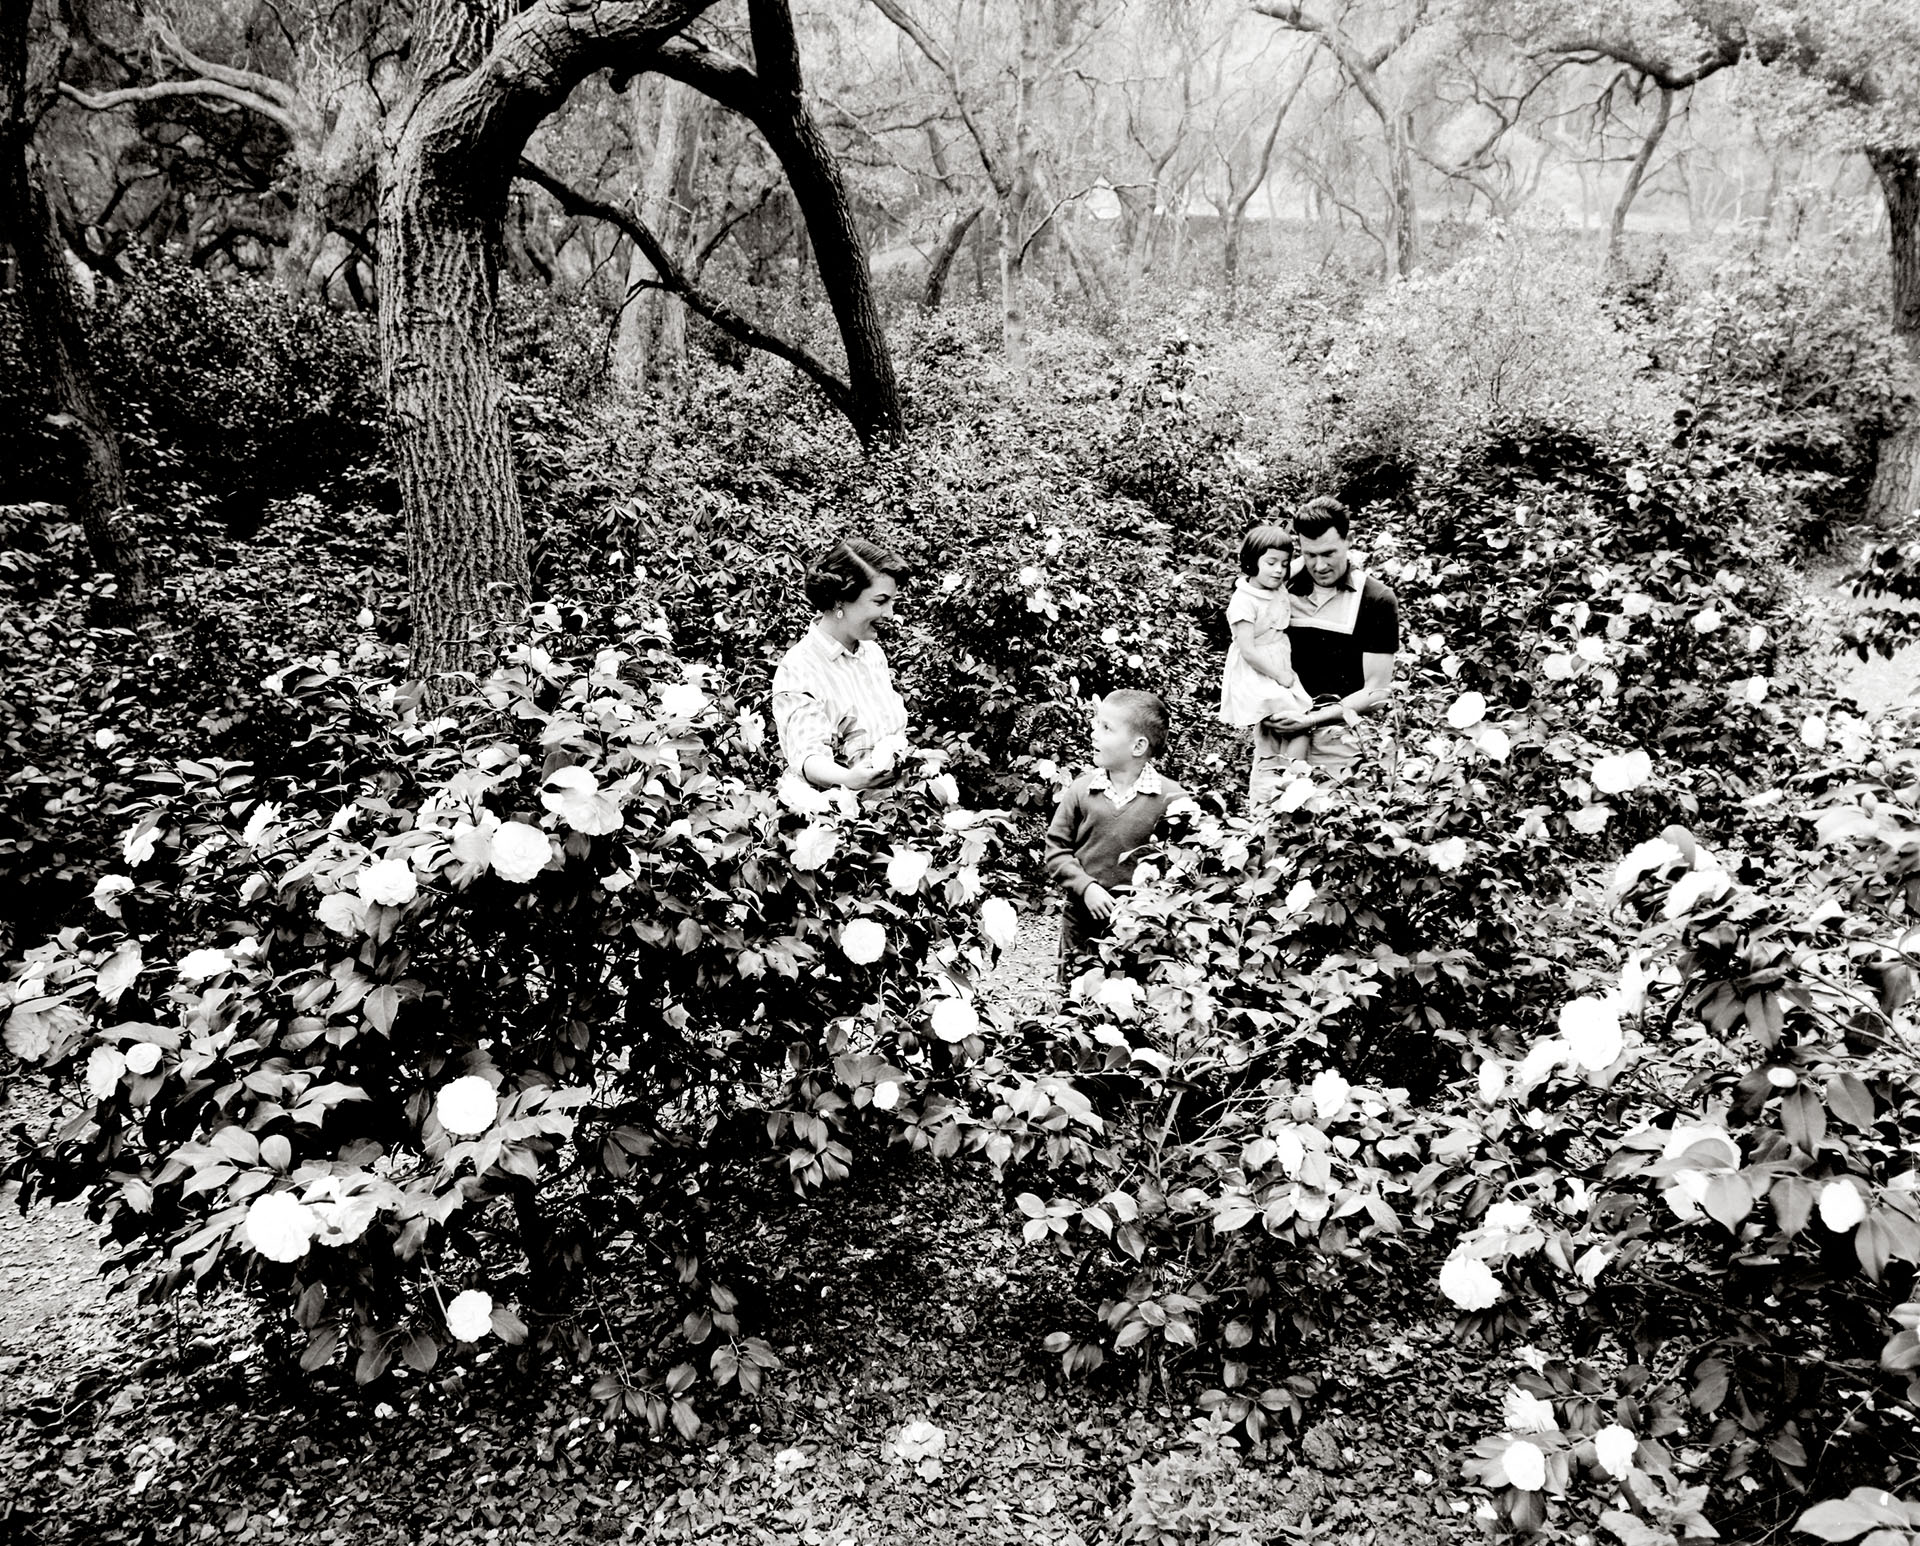 Camellias beneath oak trees at Descanso Gardens